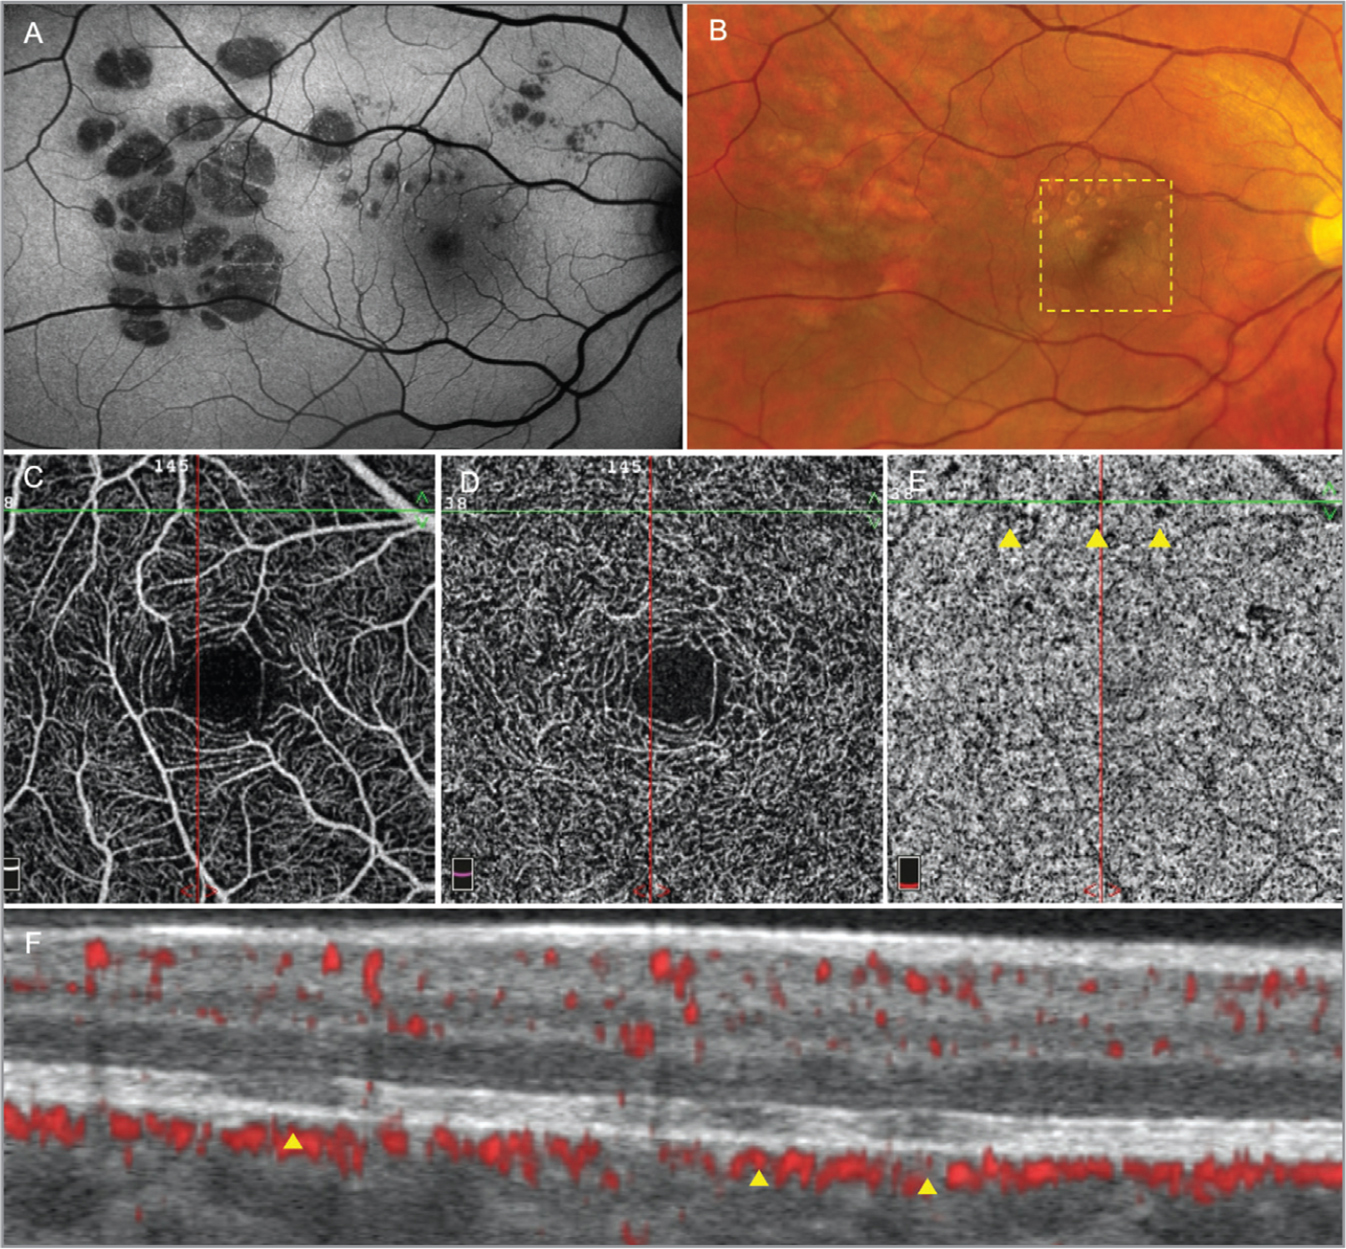 Multimodal imaging in congenital grouped albinotic spots. (A) Fundus autofluorescence (FAF) montage of the patient's right eye showing multiple hypoautofluorescent spots grouped in an animal footprint pattern. (B) Color fundus photography of the same segment imaged in (A) shows that the temporal albinotic spots are ill-defined when compared to FAF. The dotted yellow square represents the 3 mm × 3 mm area scanned by optical coherence tomography (OCTA). Both the superficial (C) and deep (D) capillary plexuses demonstrate normal vessel density. In the choriocapillaris slab (E), a shadow effect over the choriocapillaris in the location of the albinotic spots (yellow arrow heads) is observed (yellow arrow heads). (F) Horizontal spectral-domain optical coherence tomography shows atrophy of the outer retinal layers, with subjacent integrity of the retinal pigment epithelium layer (yellow arrow heads). The yellow arrow heads in F match the focal areas of shadowed choriocapillaris in E. The mosaic photographs of FAF were created from multiple individual photographs using the i2k Retina Pro (DualAlign, New York, NY).